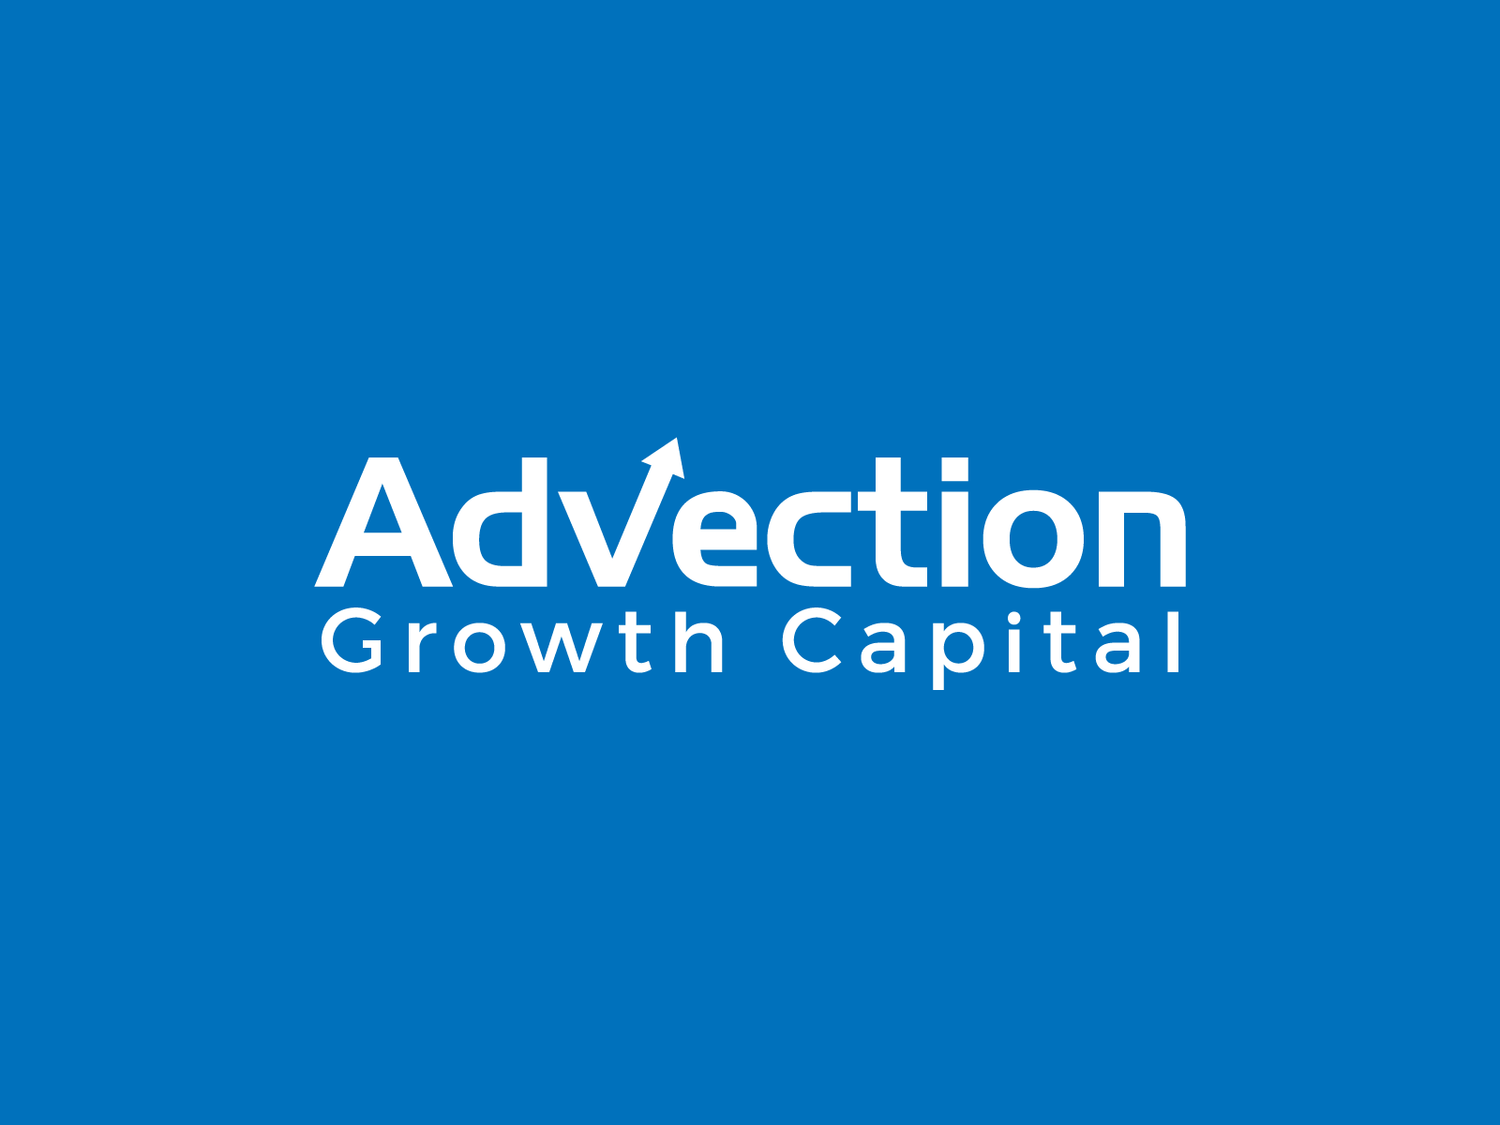 Advection Growth Capital